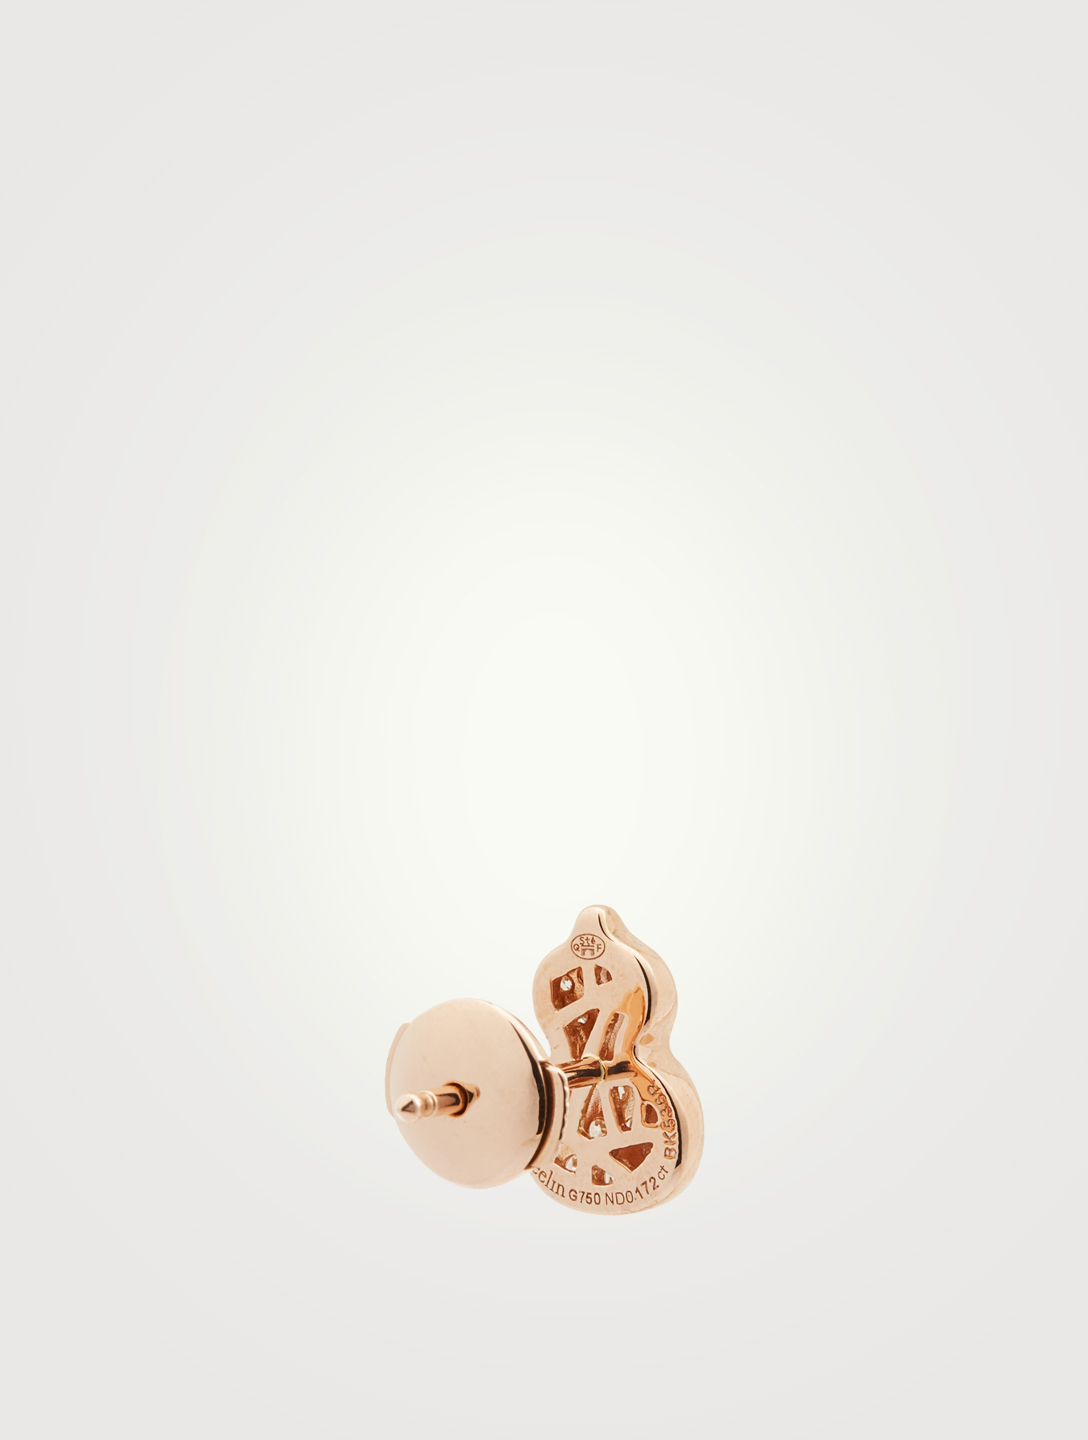 QEELIN Petite Wulu 18K Rose Gold Stud Earring With Diamonds Women's Pink